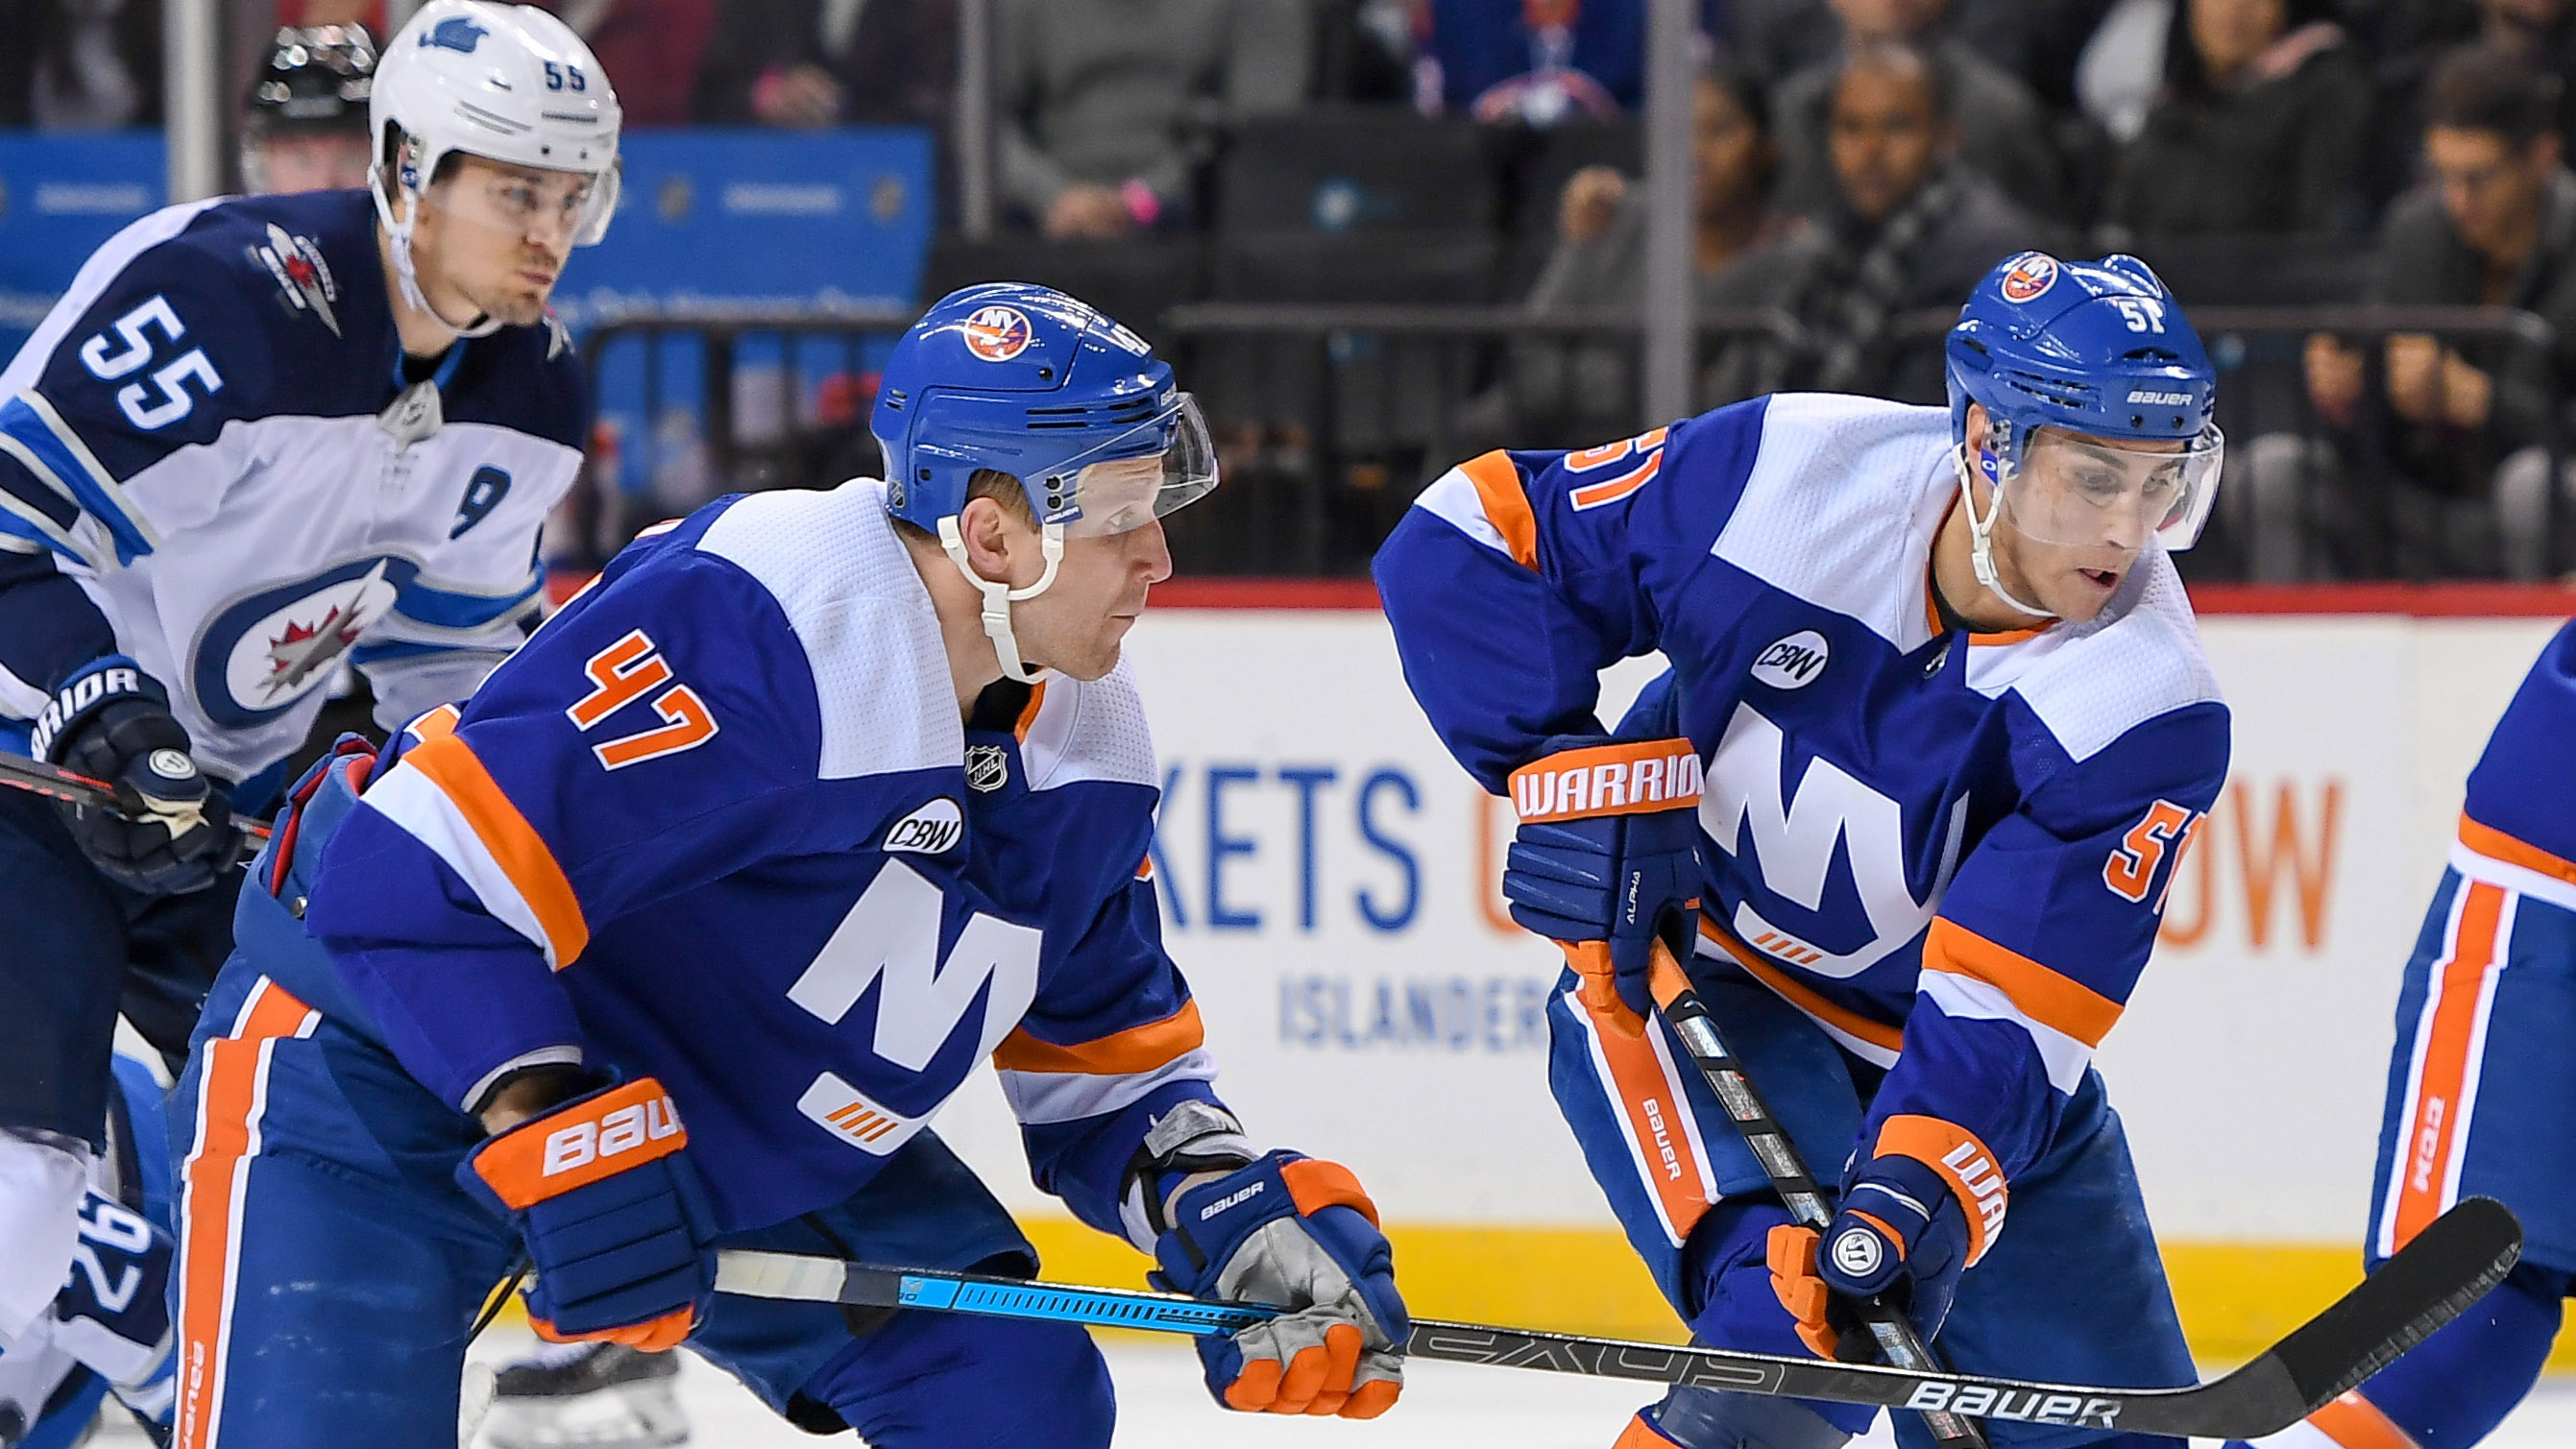 Dec 4, 2018; Brooklyn, NY, USA; New York Islanders center Valtteri Filppula (51) skates the puck across the blue line with New York Islanders right wing Tom Kuhnhackl (14) and New York Islanders right wing Leo Komarov (47) against the Winnipeg Jets during the second period at Barclays Center. Mandatory Credit: Dennis Schneidler-USA TODAY Sports